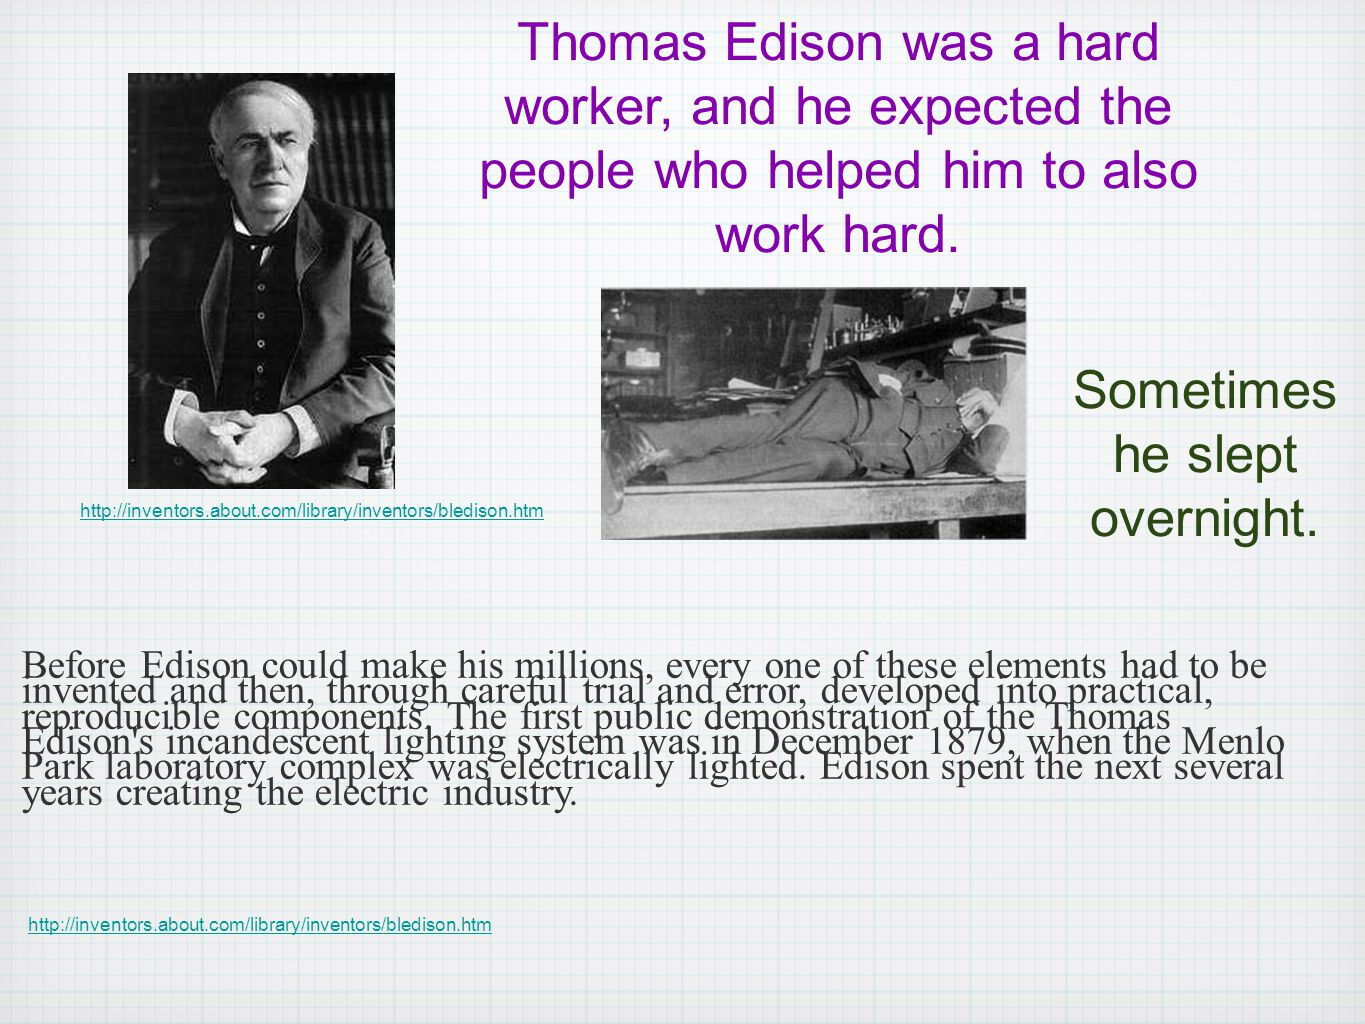 Before Edison could make his millions, every one of these elements had to be invented and then, through careful trial and error, developed into practi